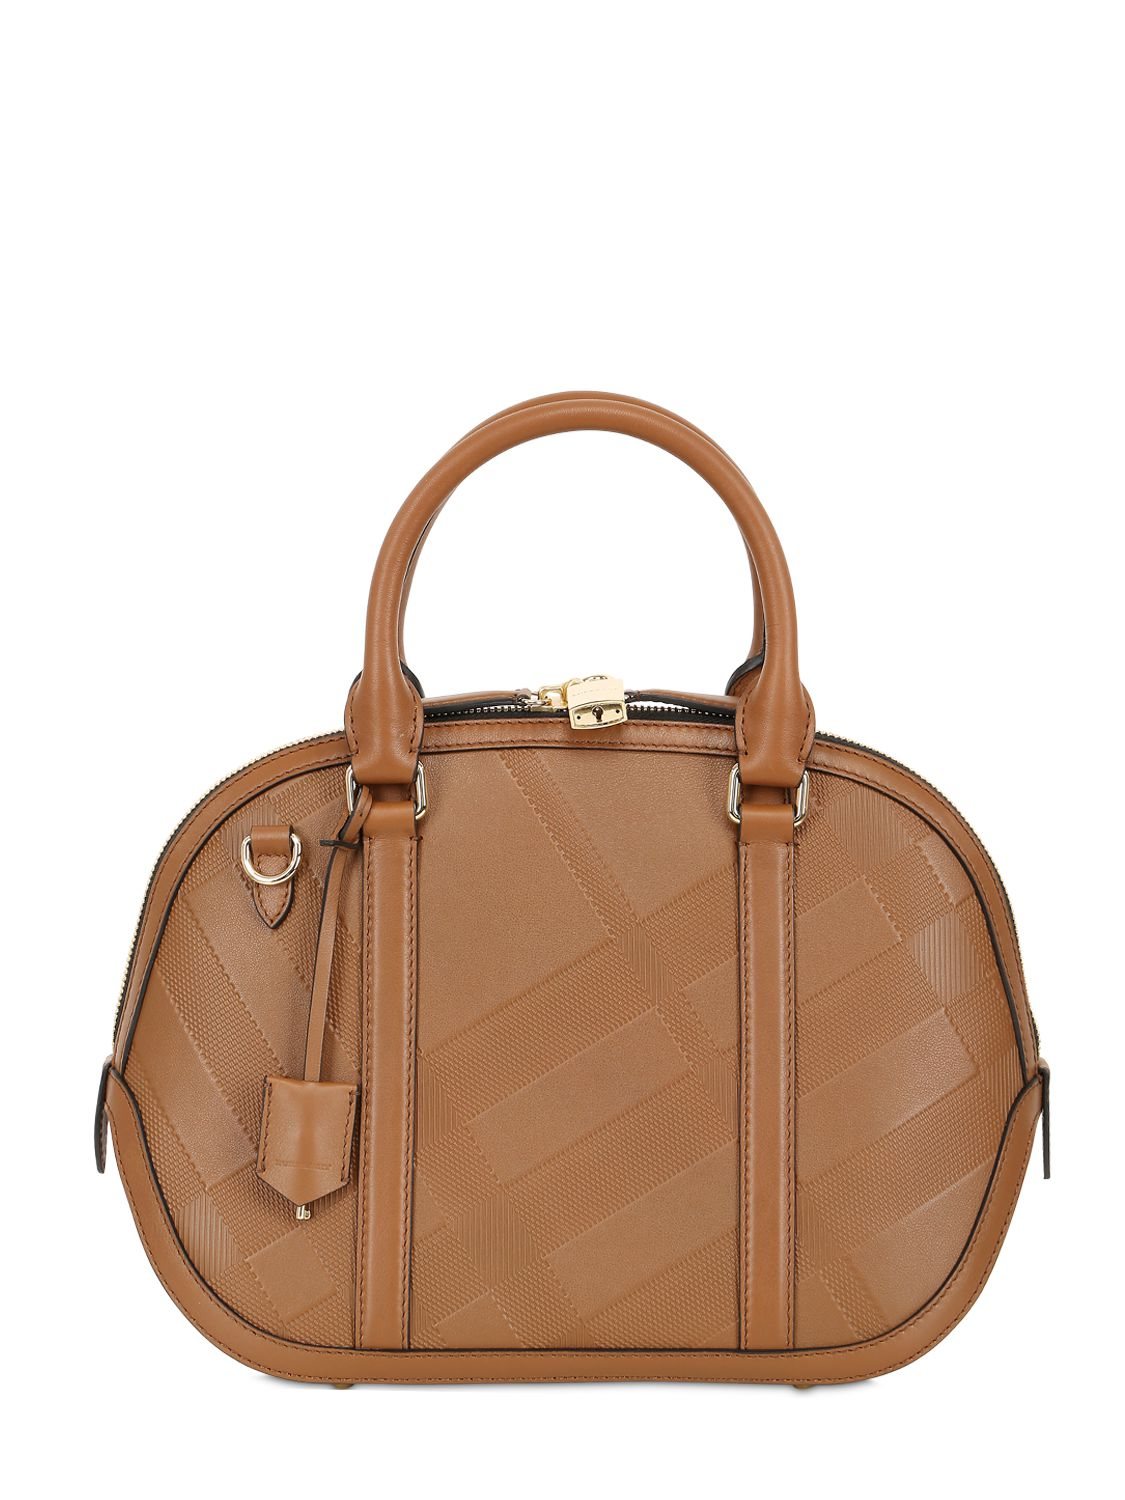 71d6a0e3c6be Lyst burberry small orchard embossed leather bag in brown jpg 1125x1500 Burberry  brown bag